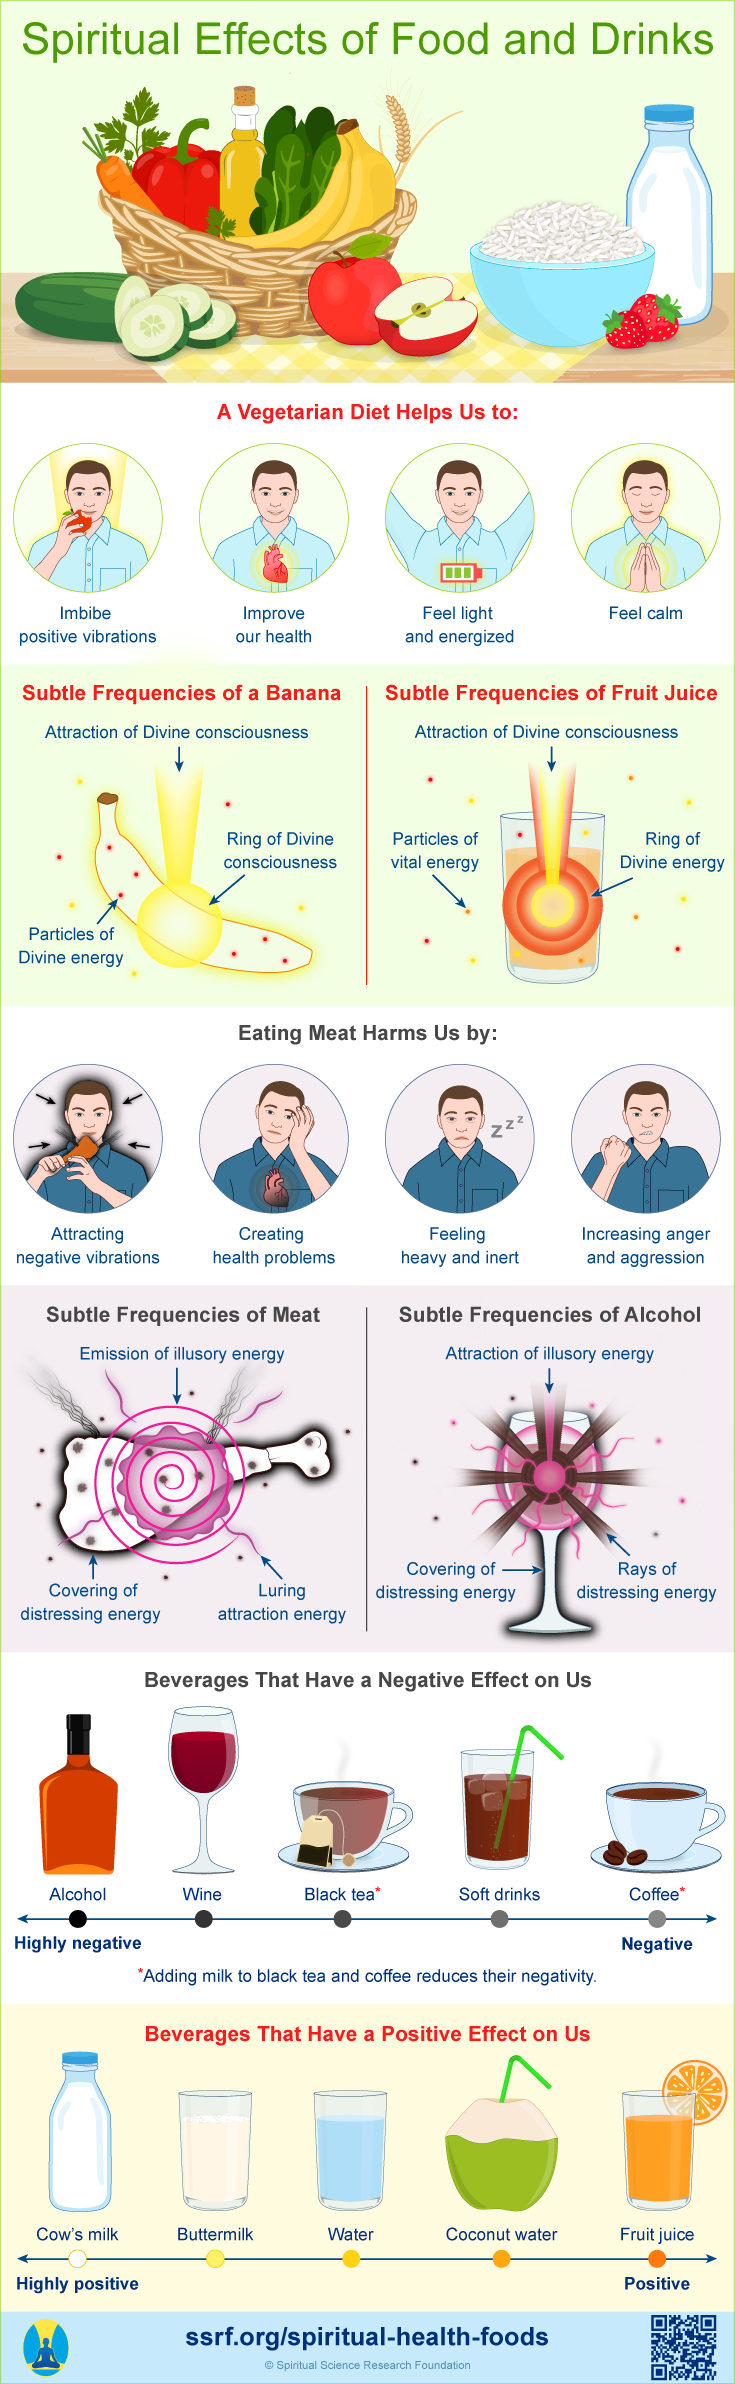 Spiritual Effects of Food and Drinks